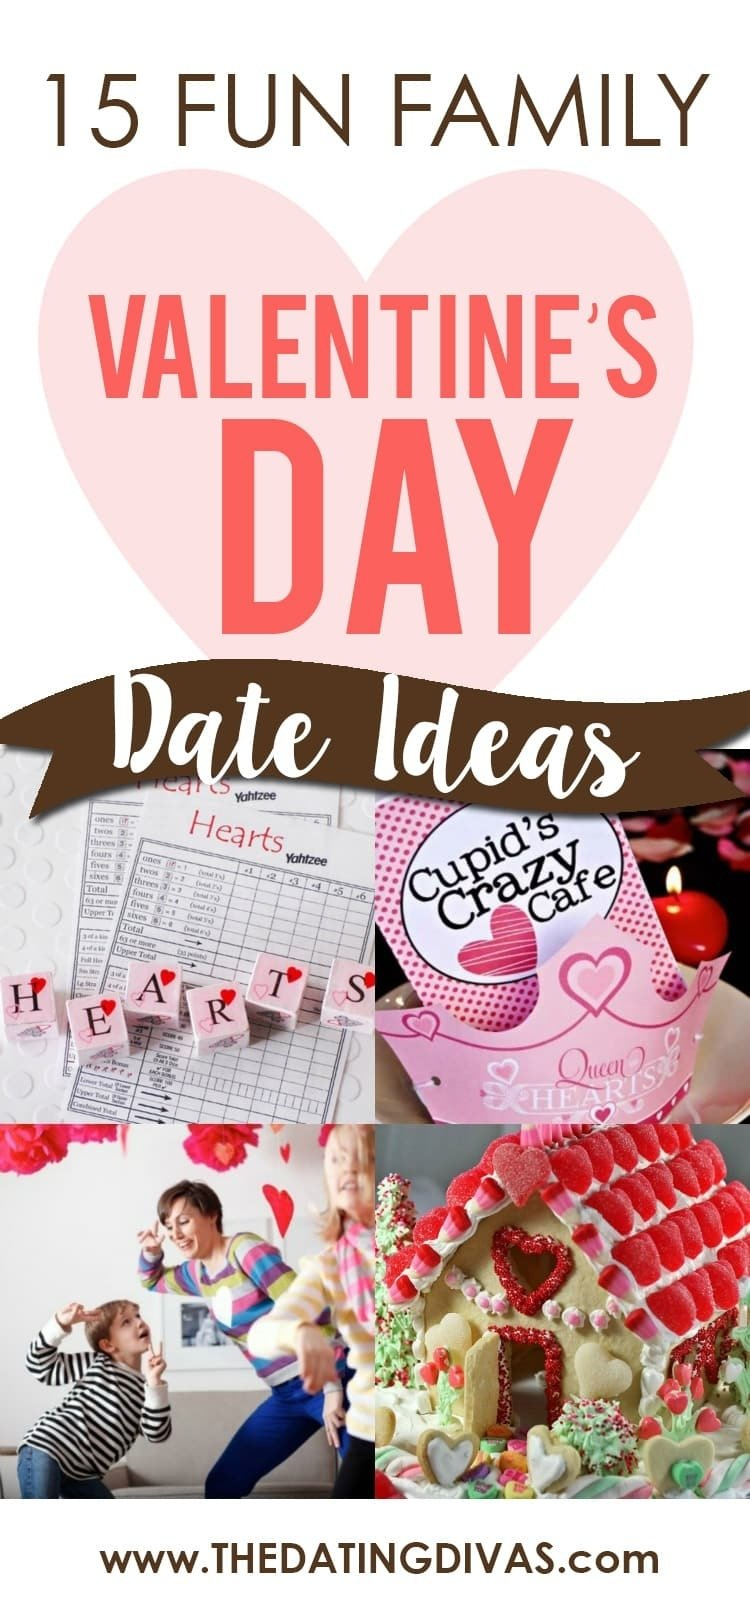 the top 76 valentine's day date ideas - from the dating divas